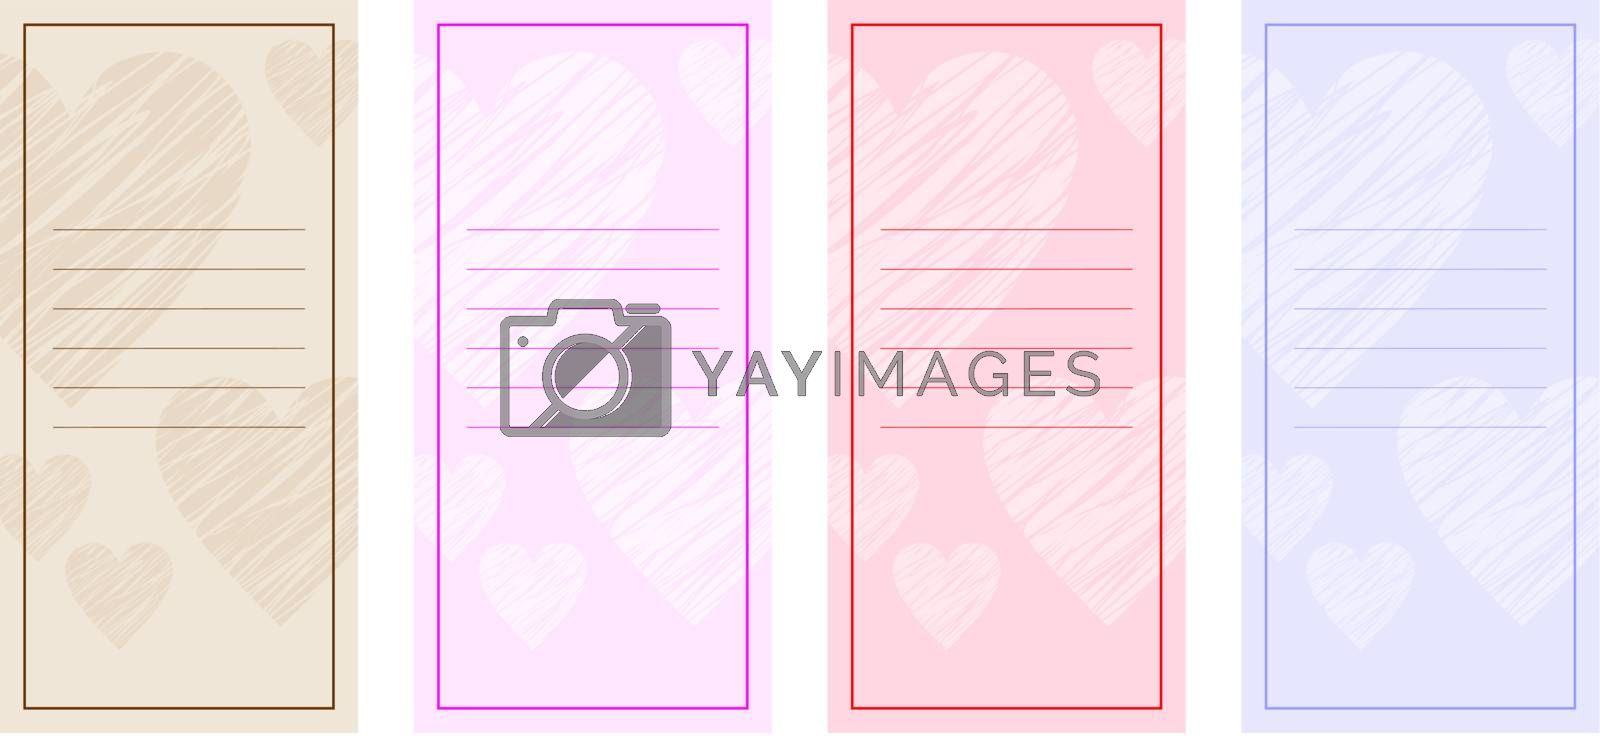 Image forms for greeting cards and text.